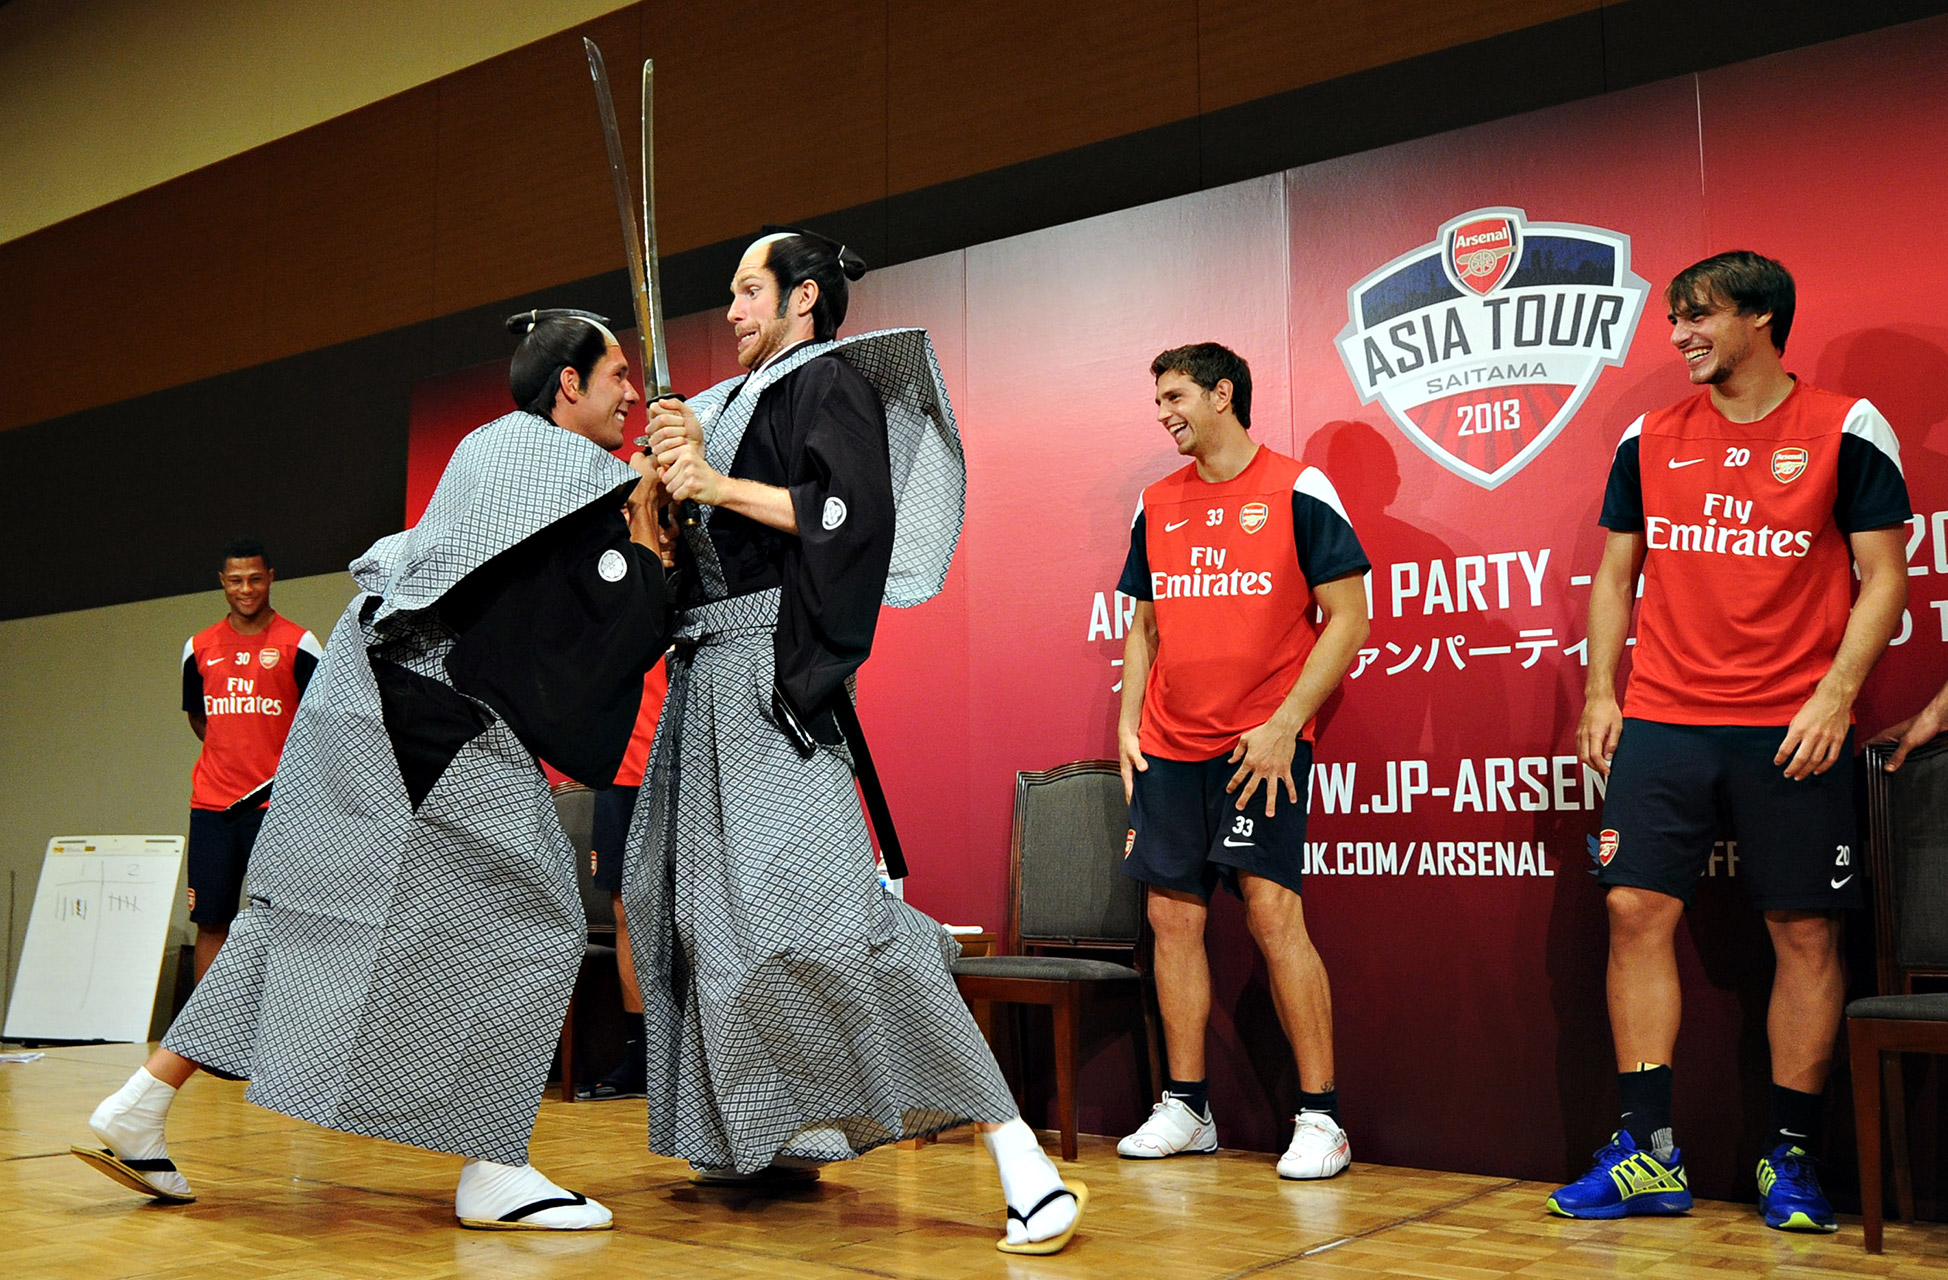 Arsenal Samurais